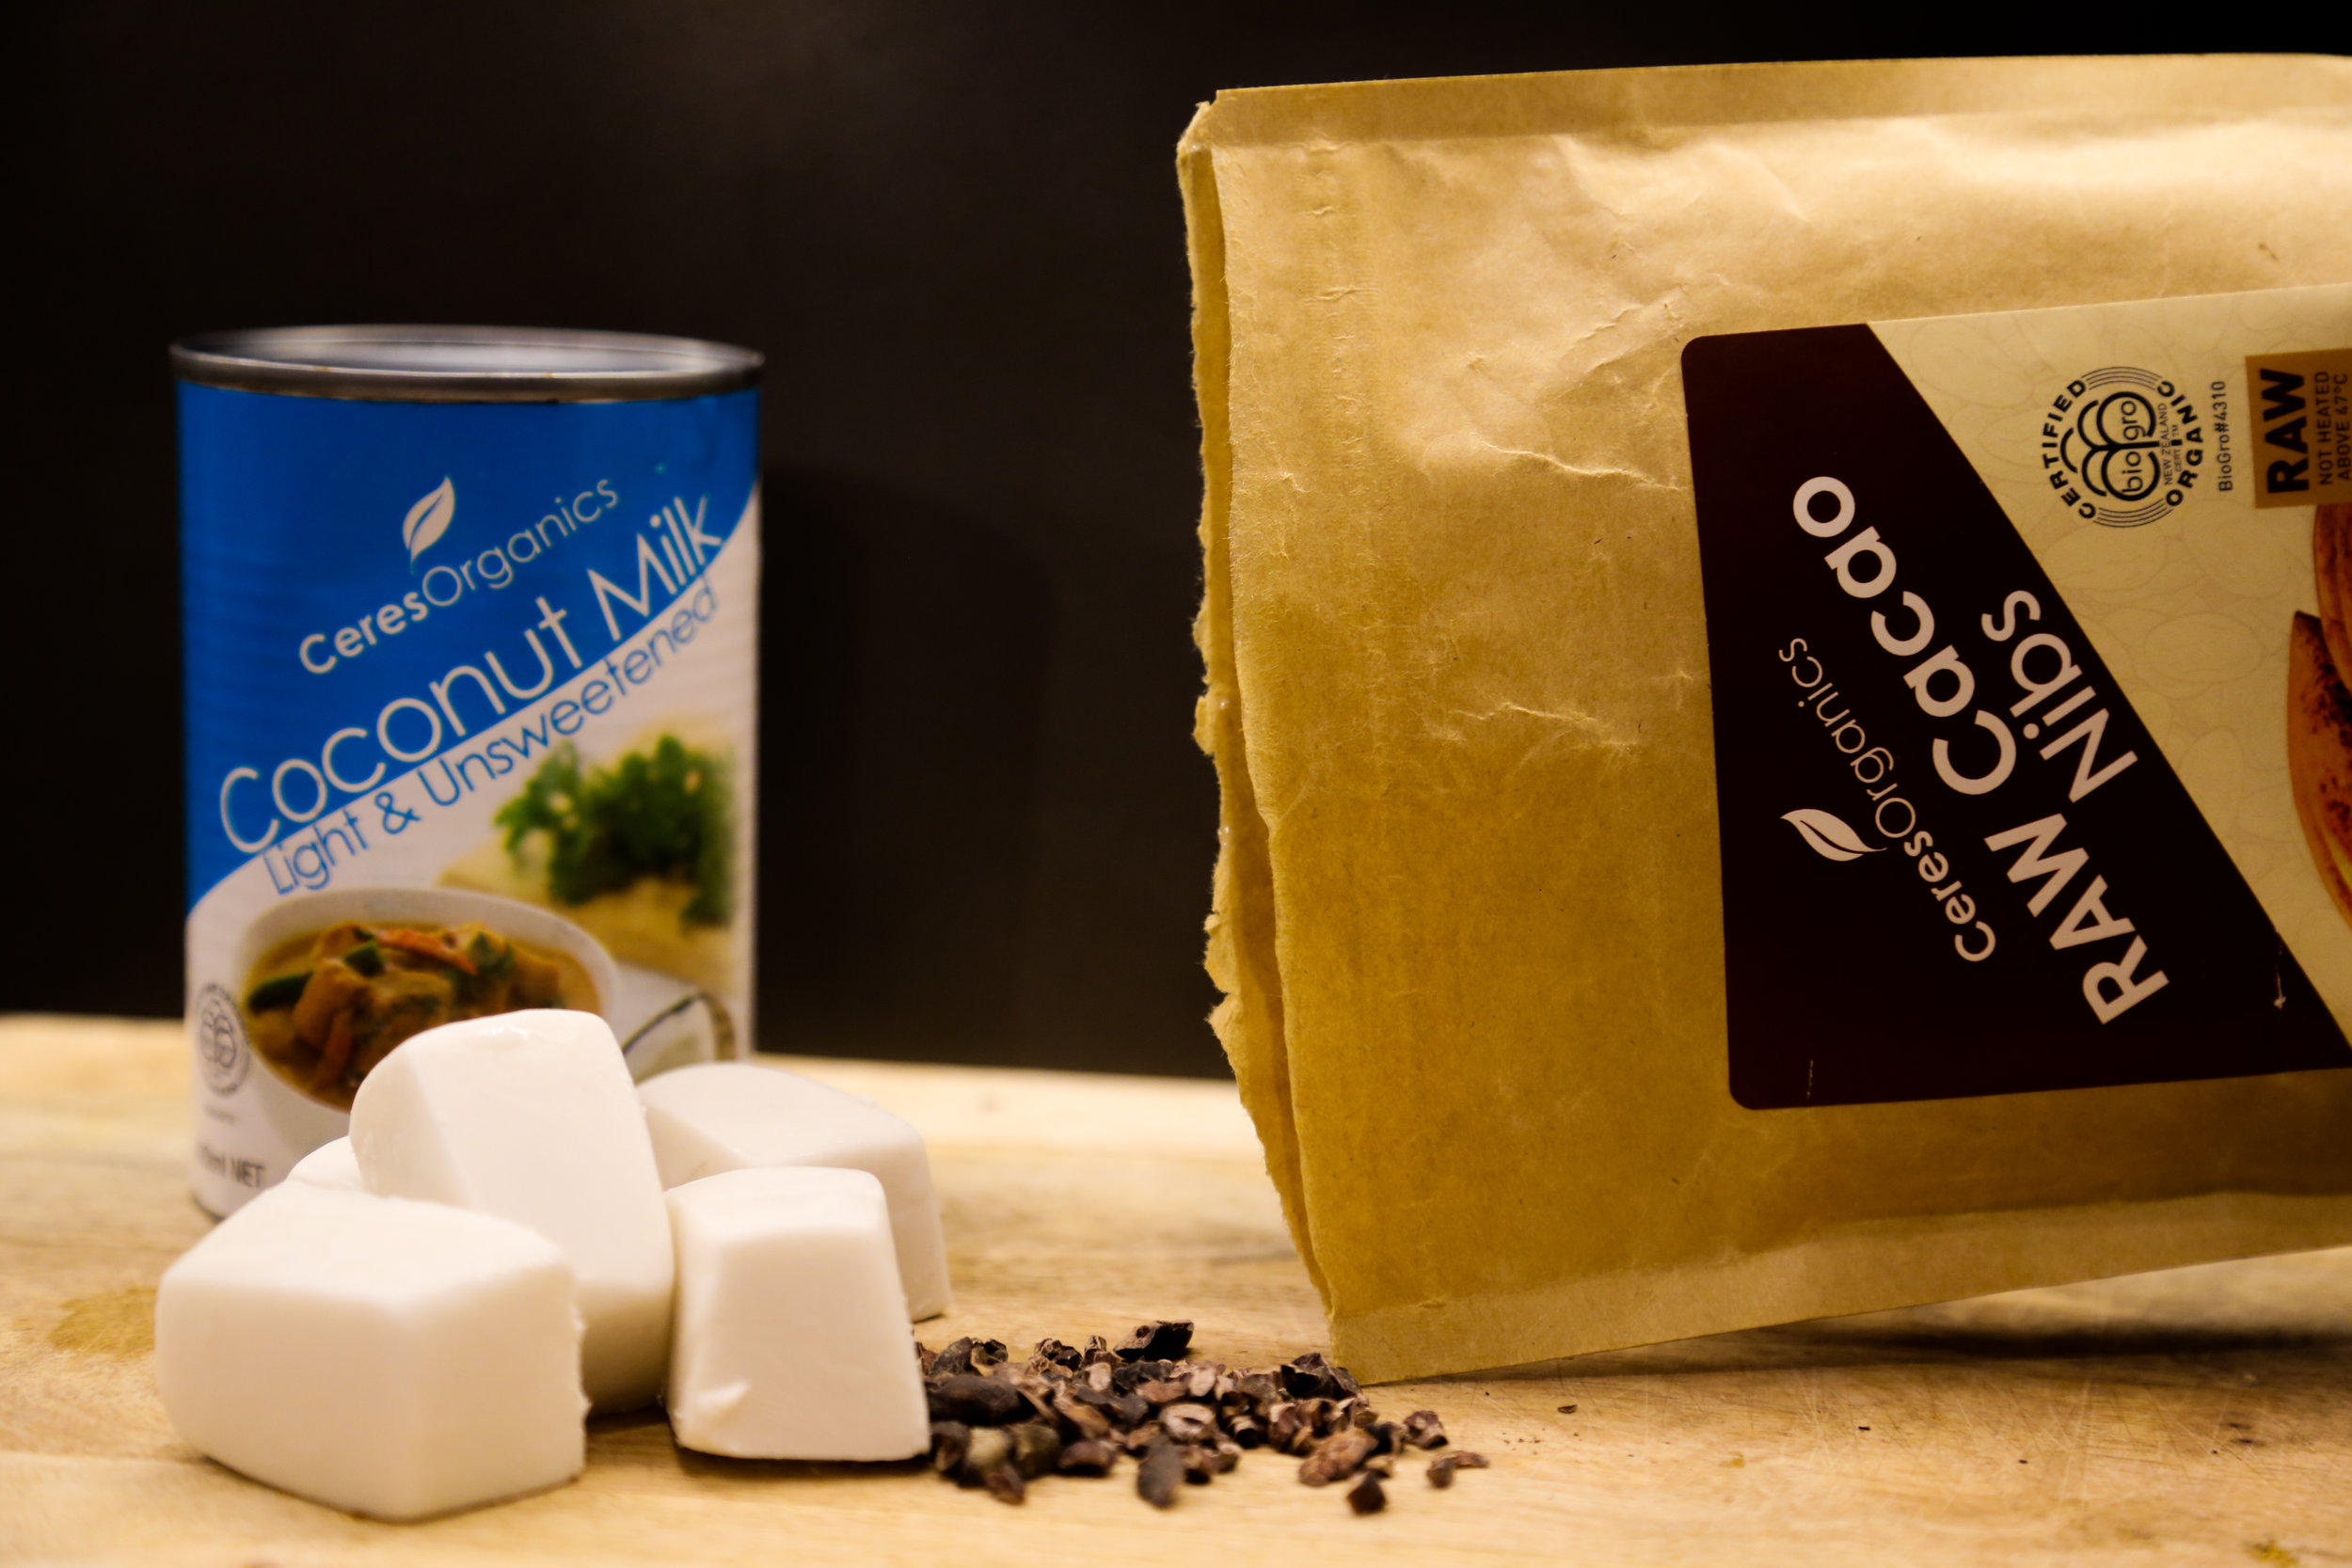 Frozen coconut ice-cubes for a warm summer night & cacao nibs for good measure!